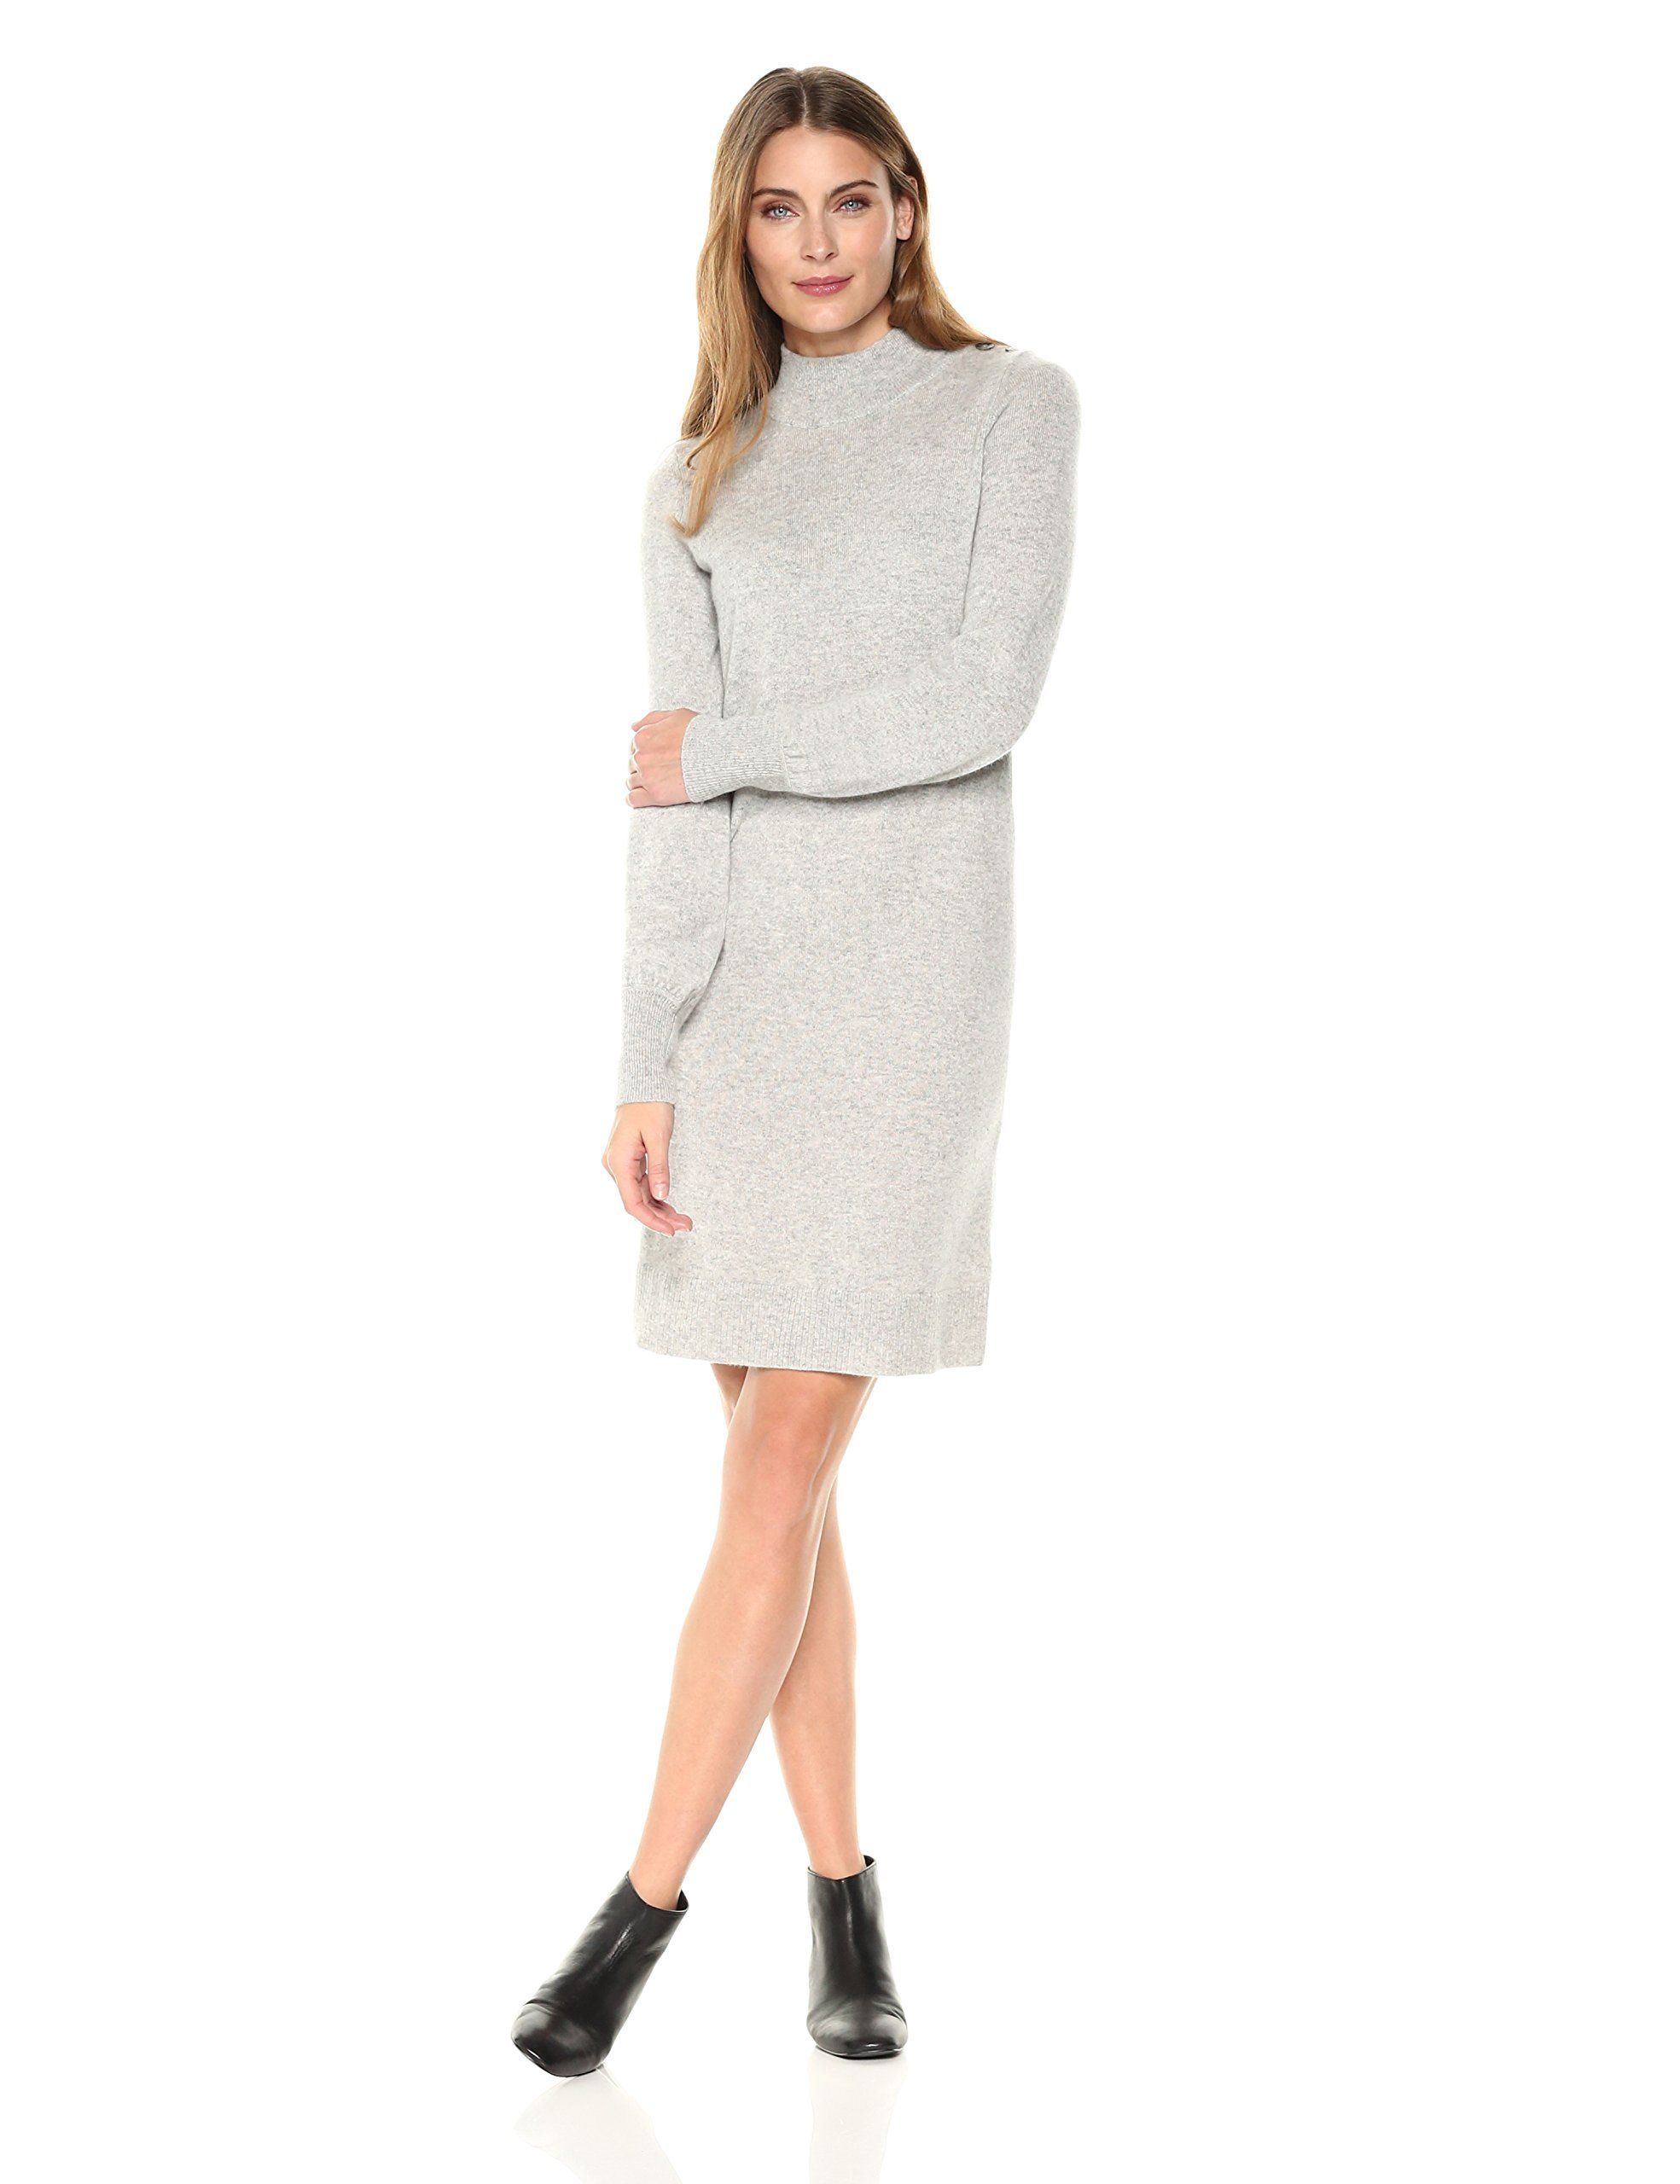 Fashion week Cashmere 100 Women sweater dresses for woman